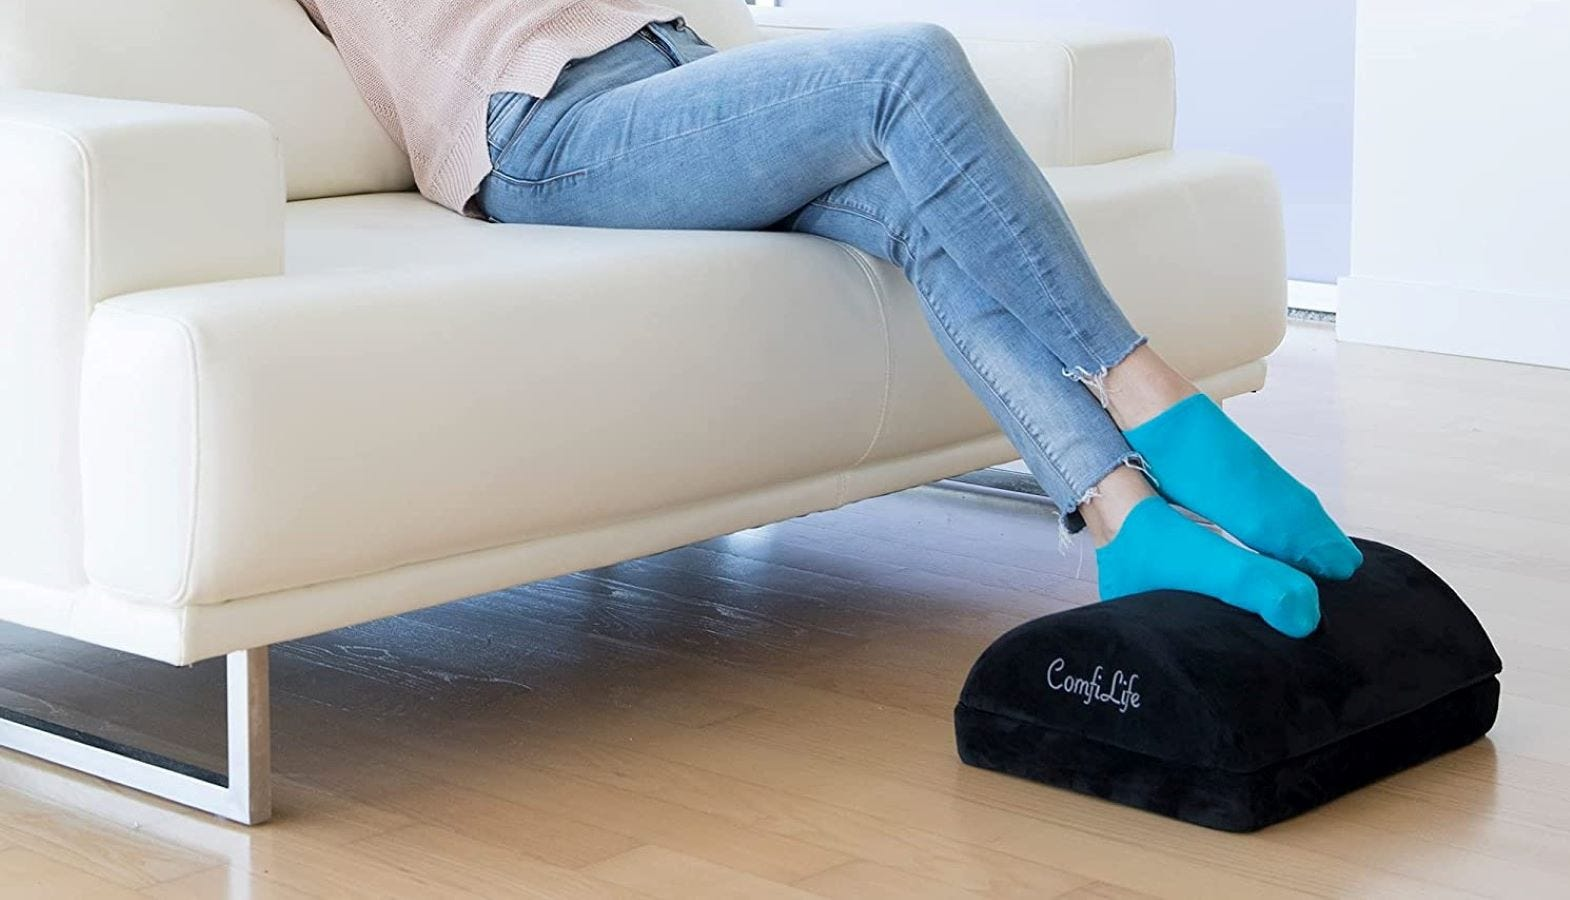 A woman sitting on a couch and resting her feet on the ComfiLife Foot Rest.